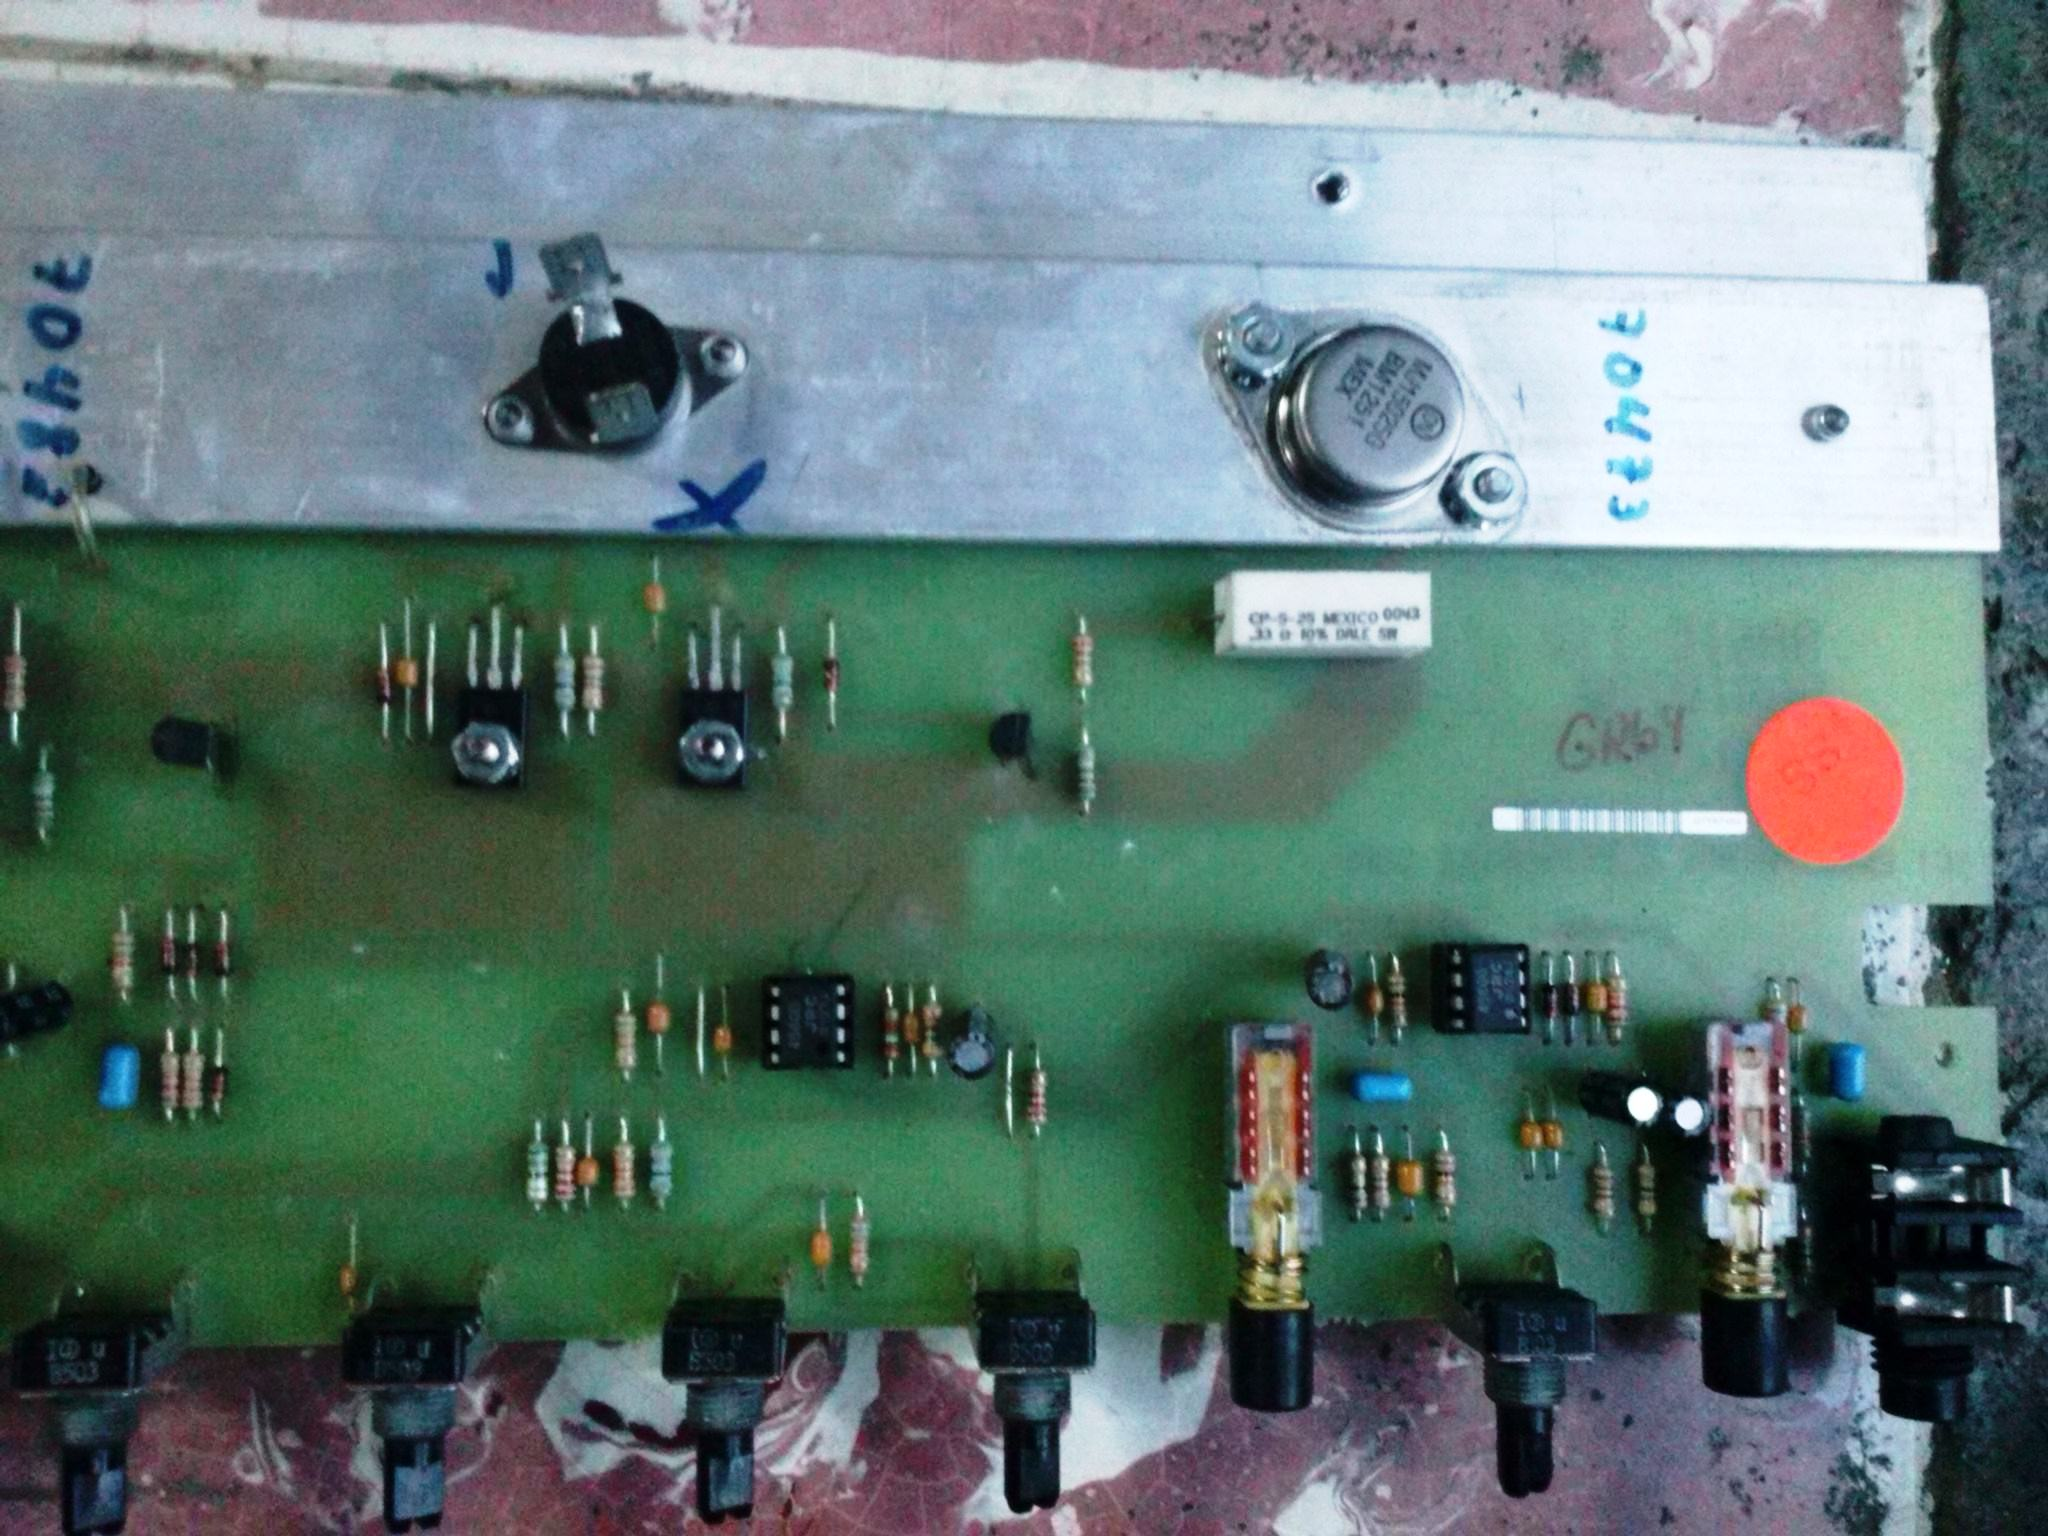 Peavey Basic 112 Schematic Pictures to Pin on Pinterest - ThePinsta